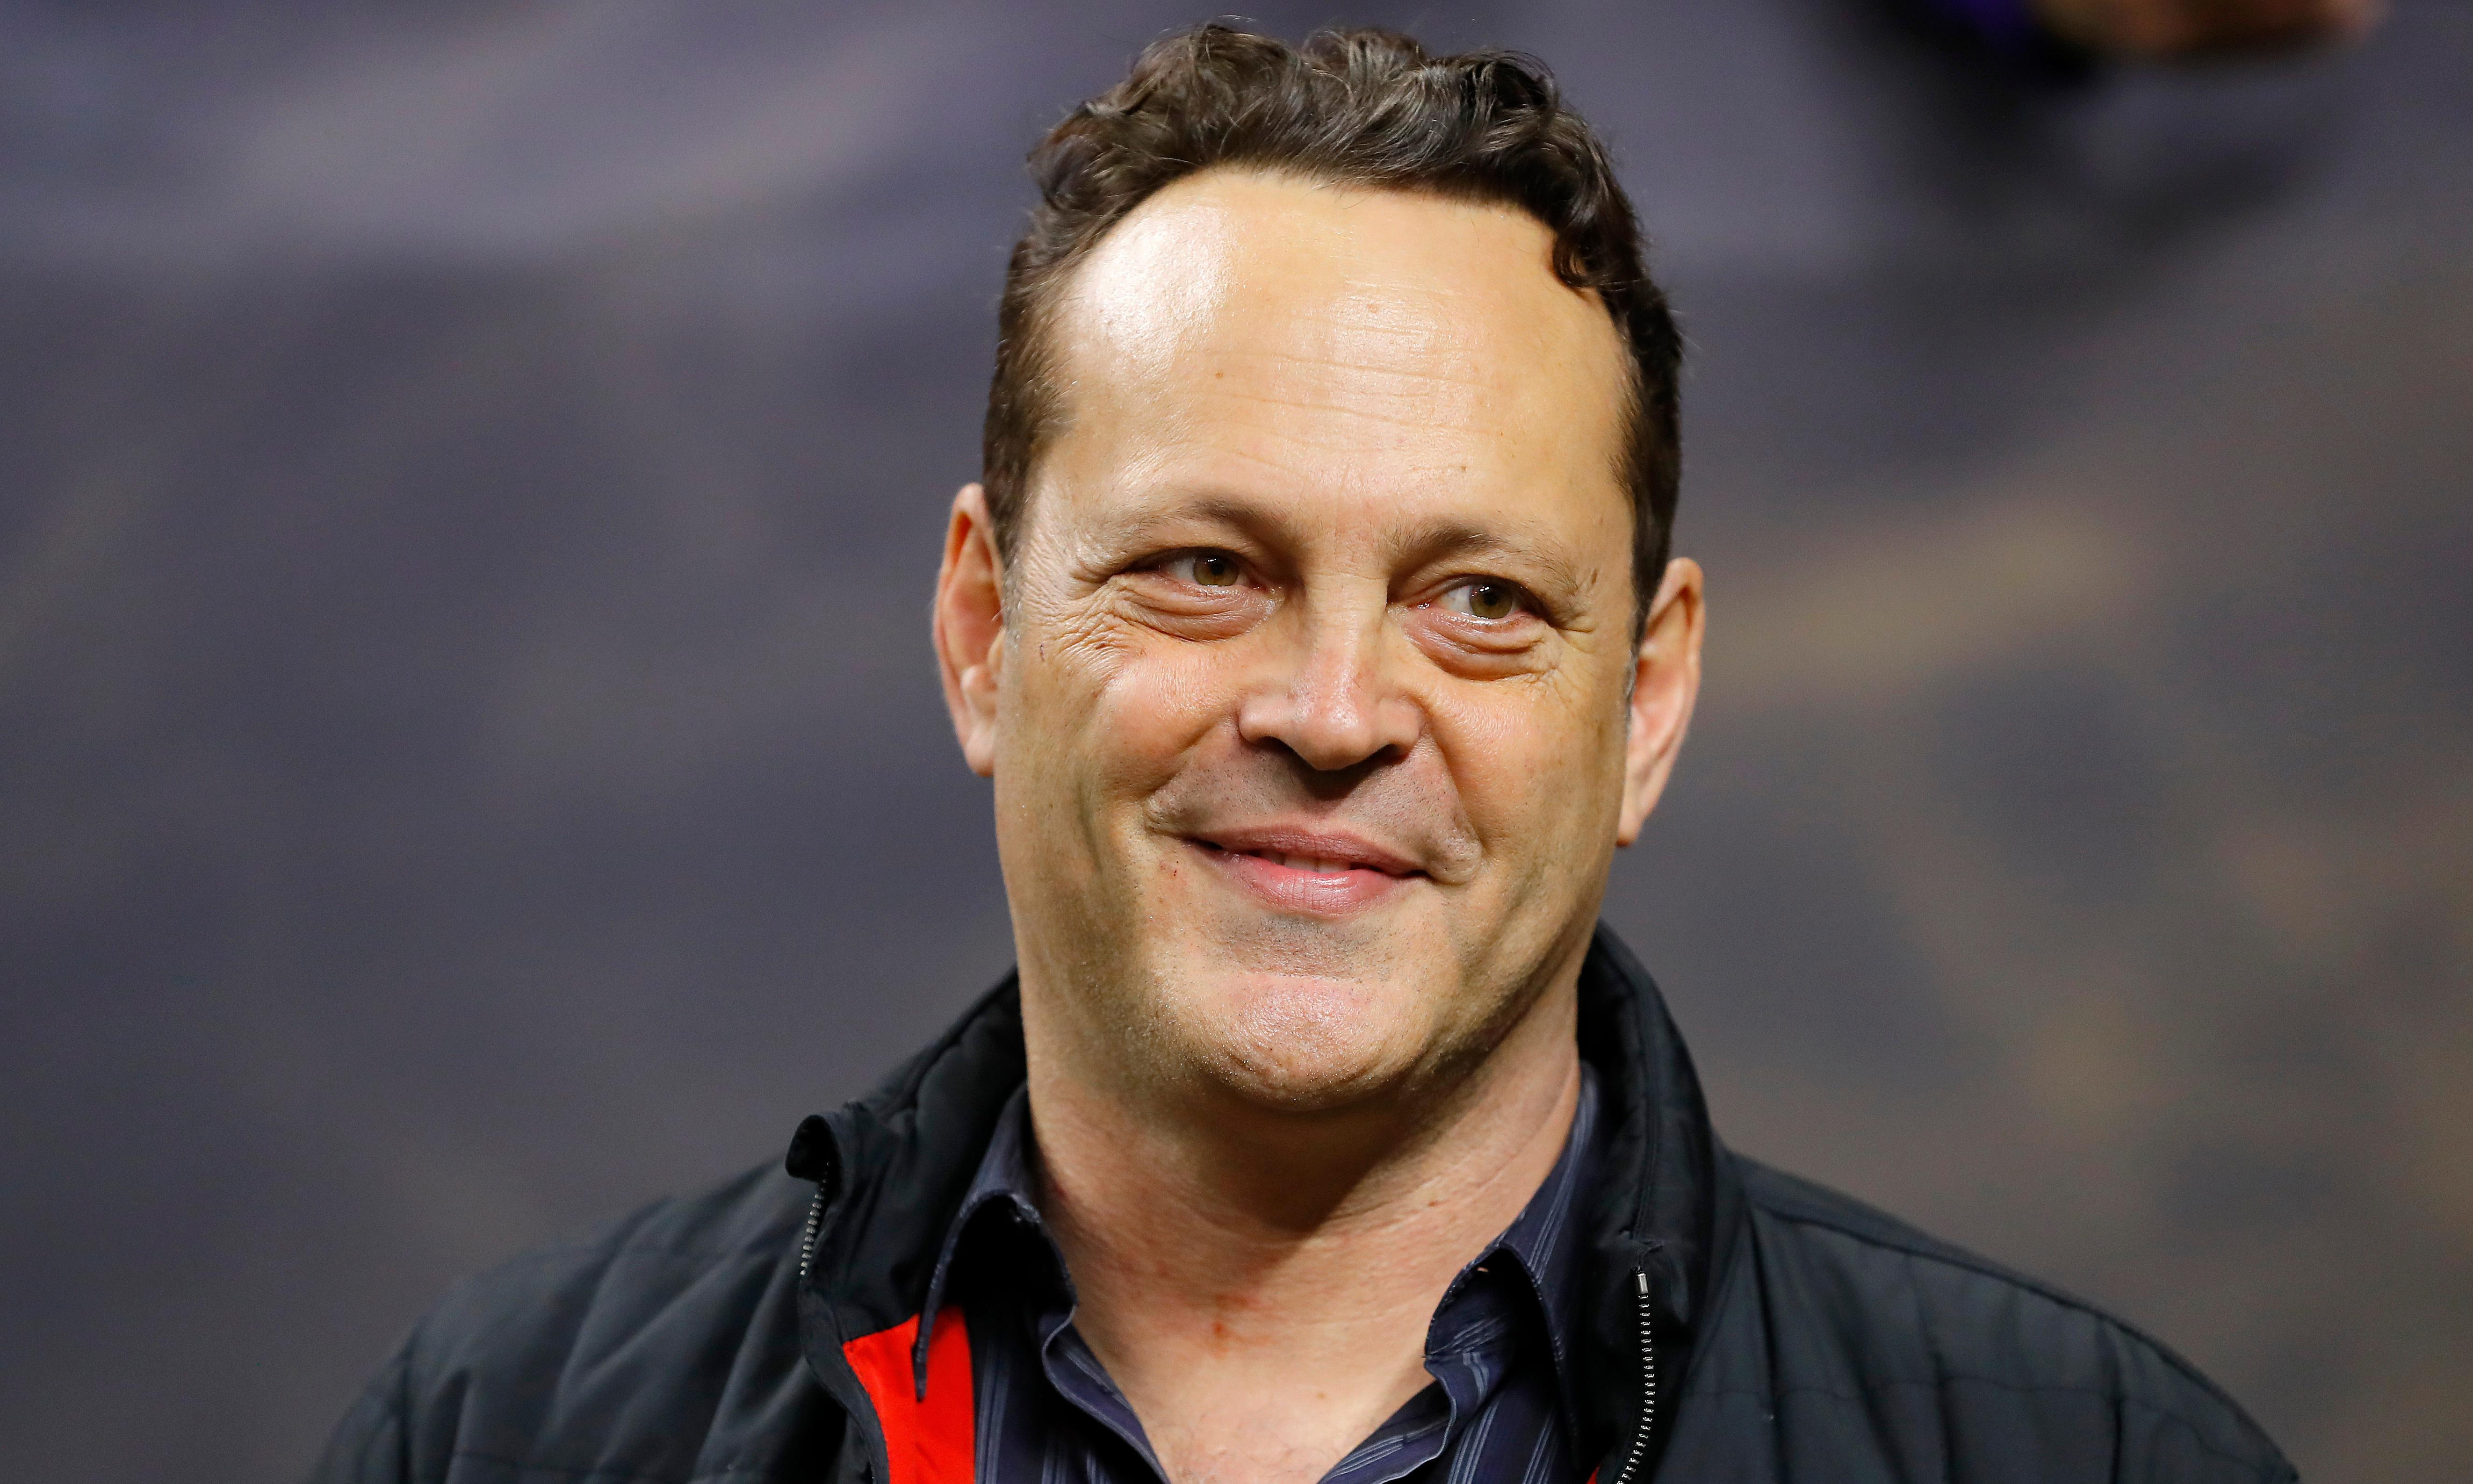 Surprised by Vince Vaughn's chumminess with Trump? You shouldn't be